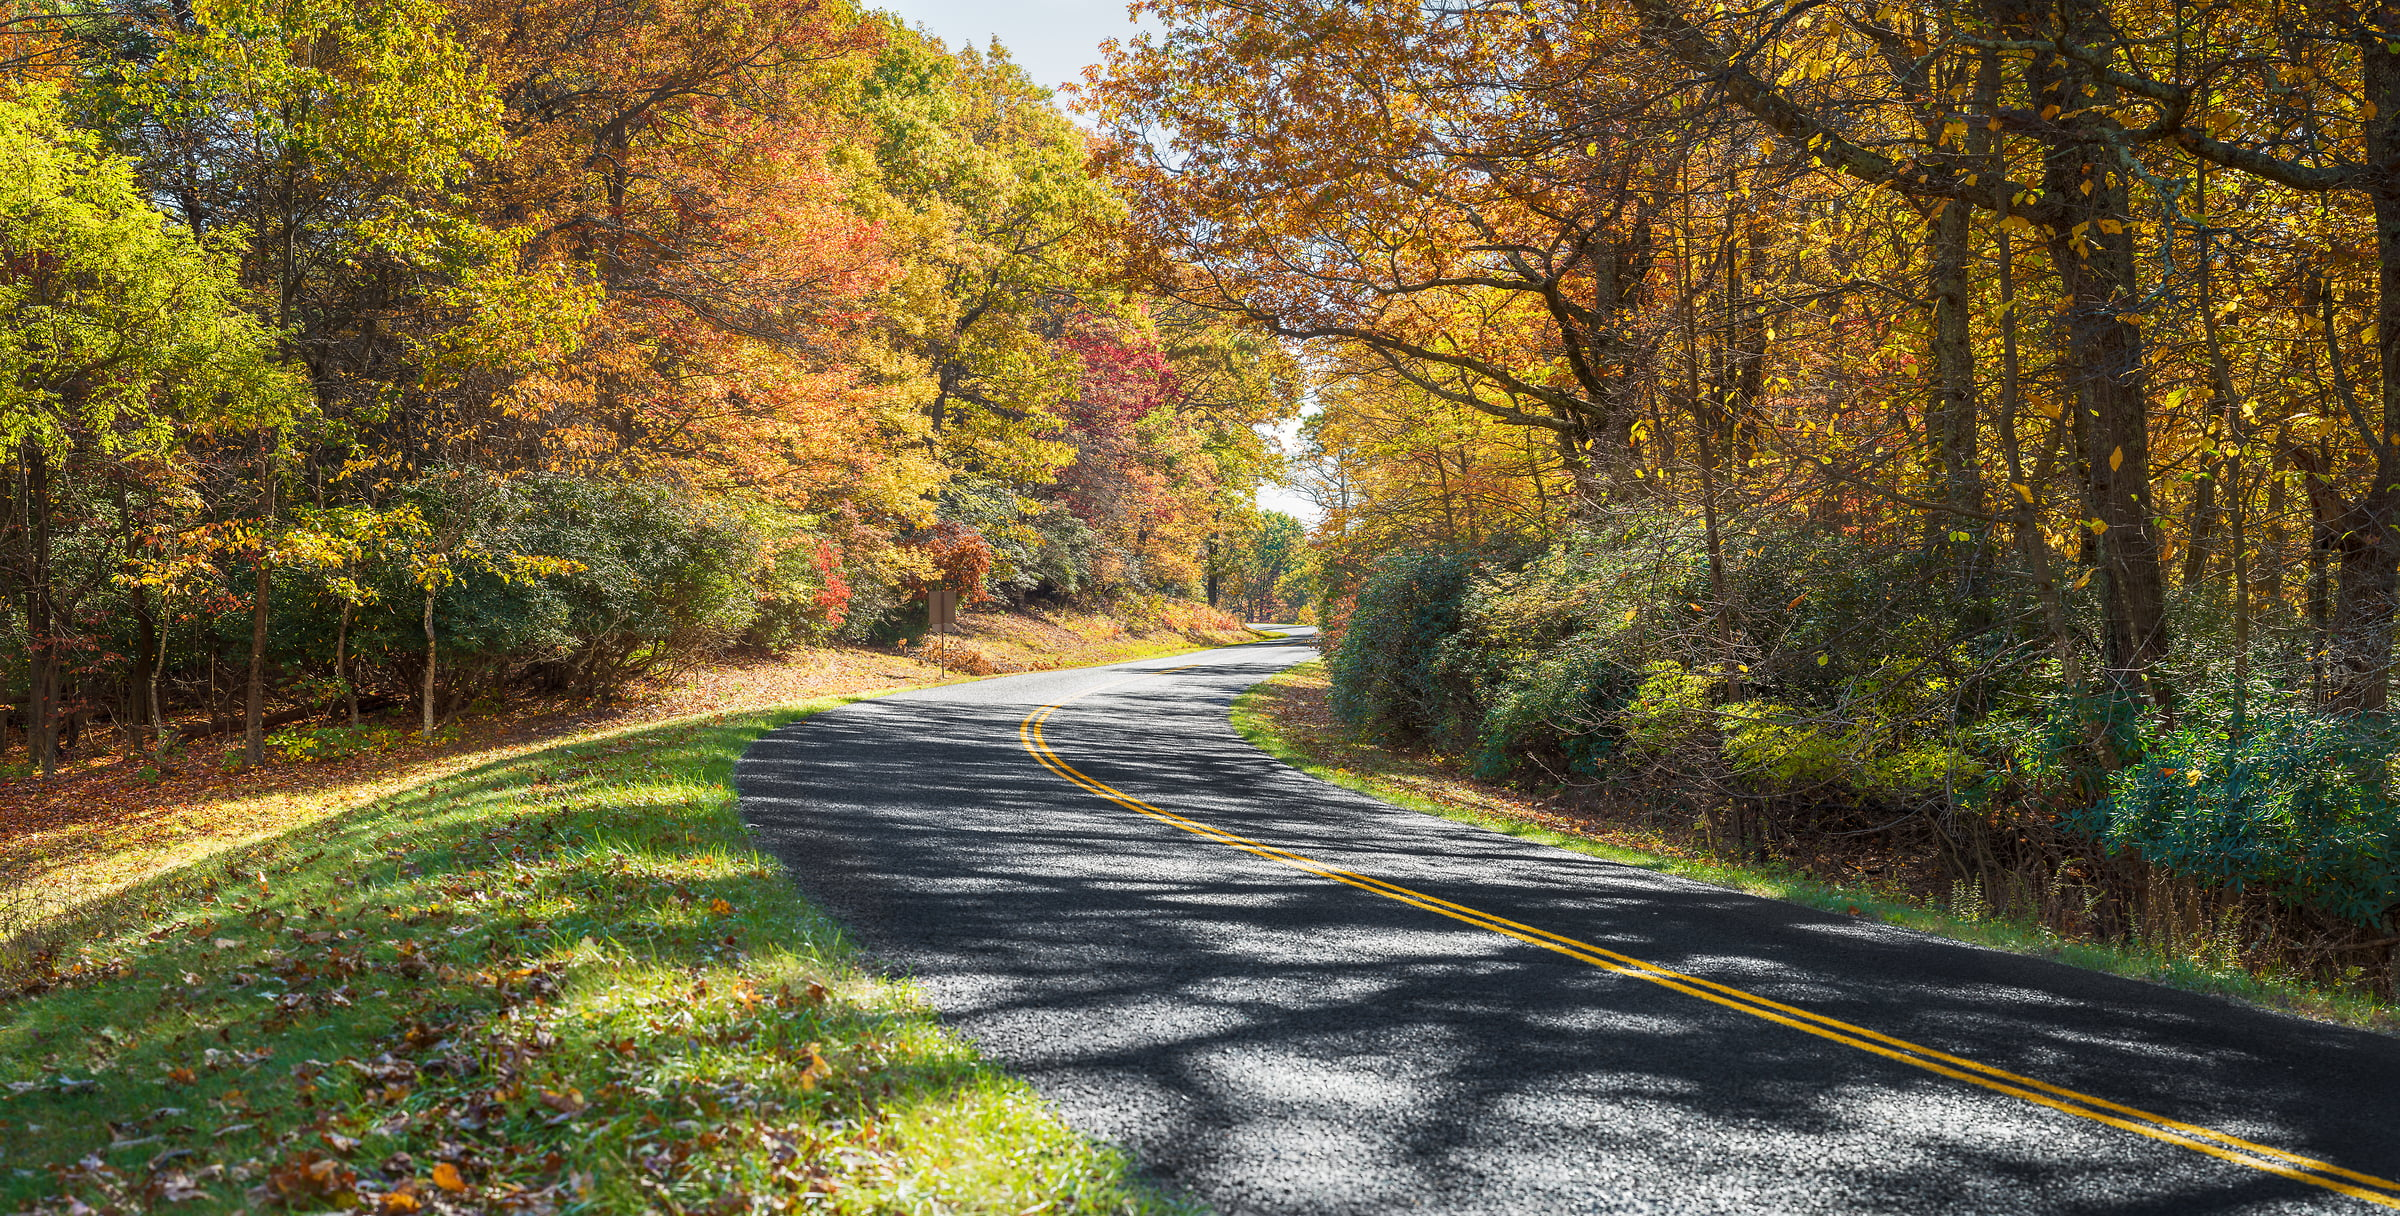 303 megapixels! A very high resolution, large-format VAST photo of a road curving through a forest in autumn with colorful fall autumn foliage; fine art photograph created by Jim Tarpo at Milepost 160, Blue Ridge Pkwy, Virginia